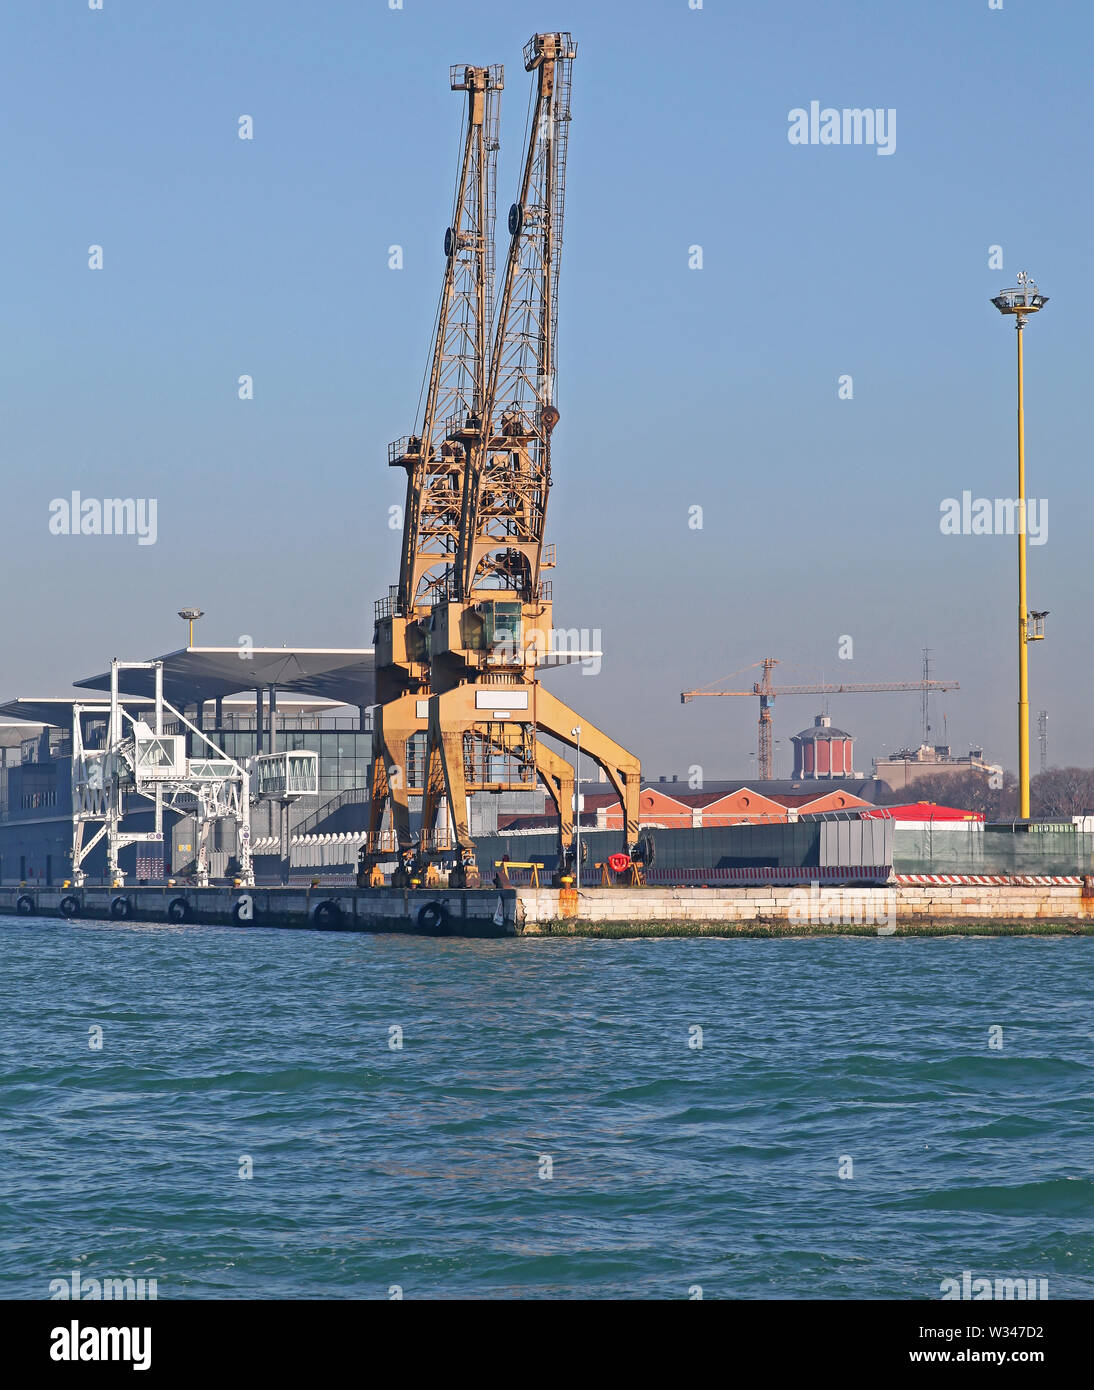 Two Big Cranes at Commercial Dock in Port of Venice - Stock Image